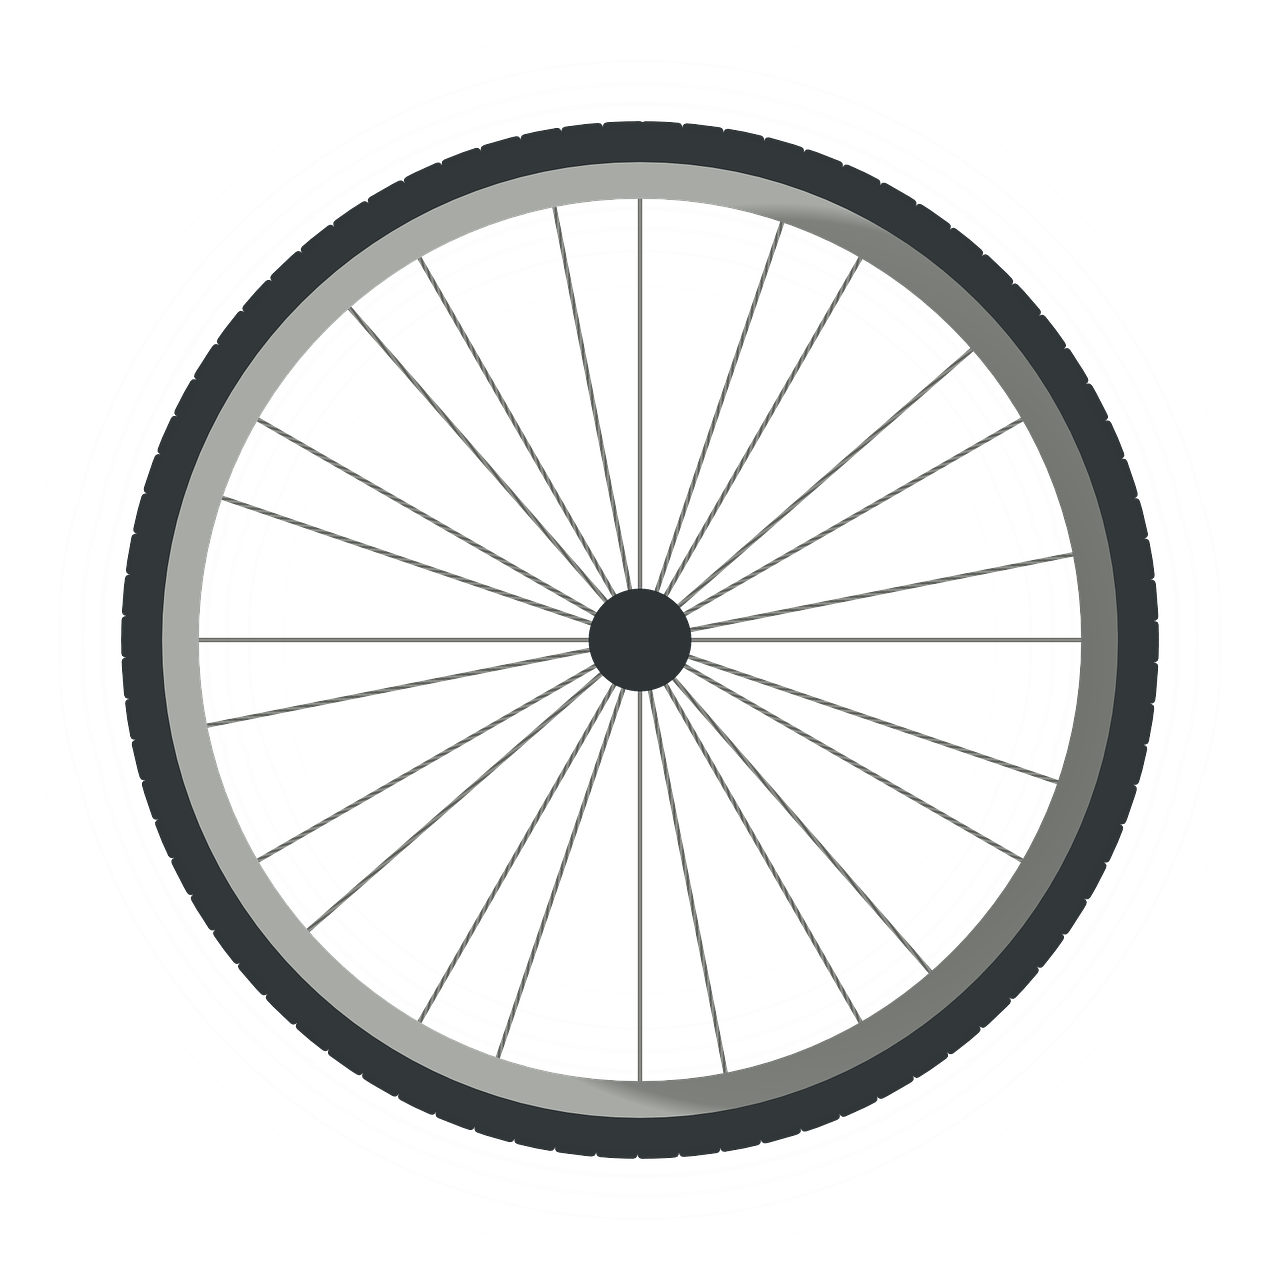 wheel tire bicycle free vector graphic on pixabay https creativecommons org licenses publicdomain